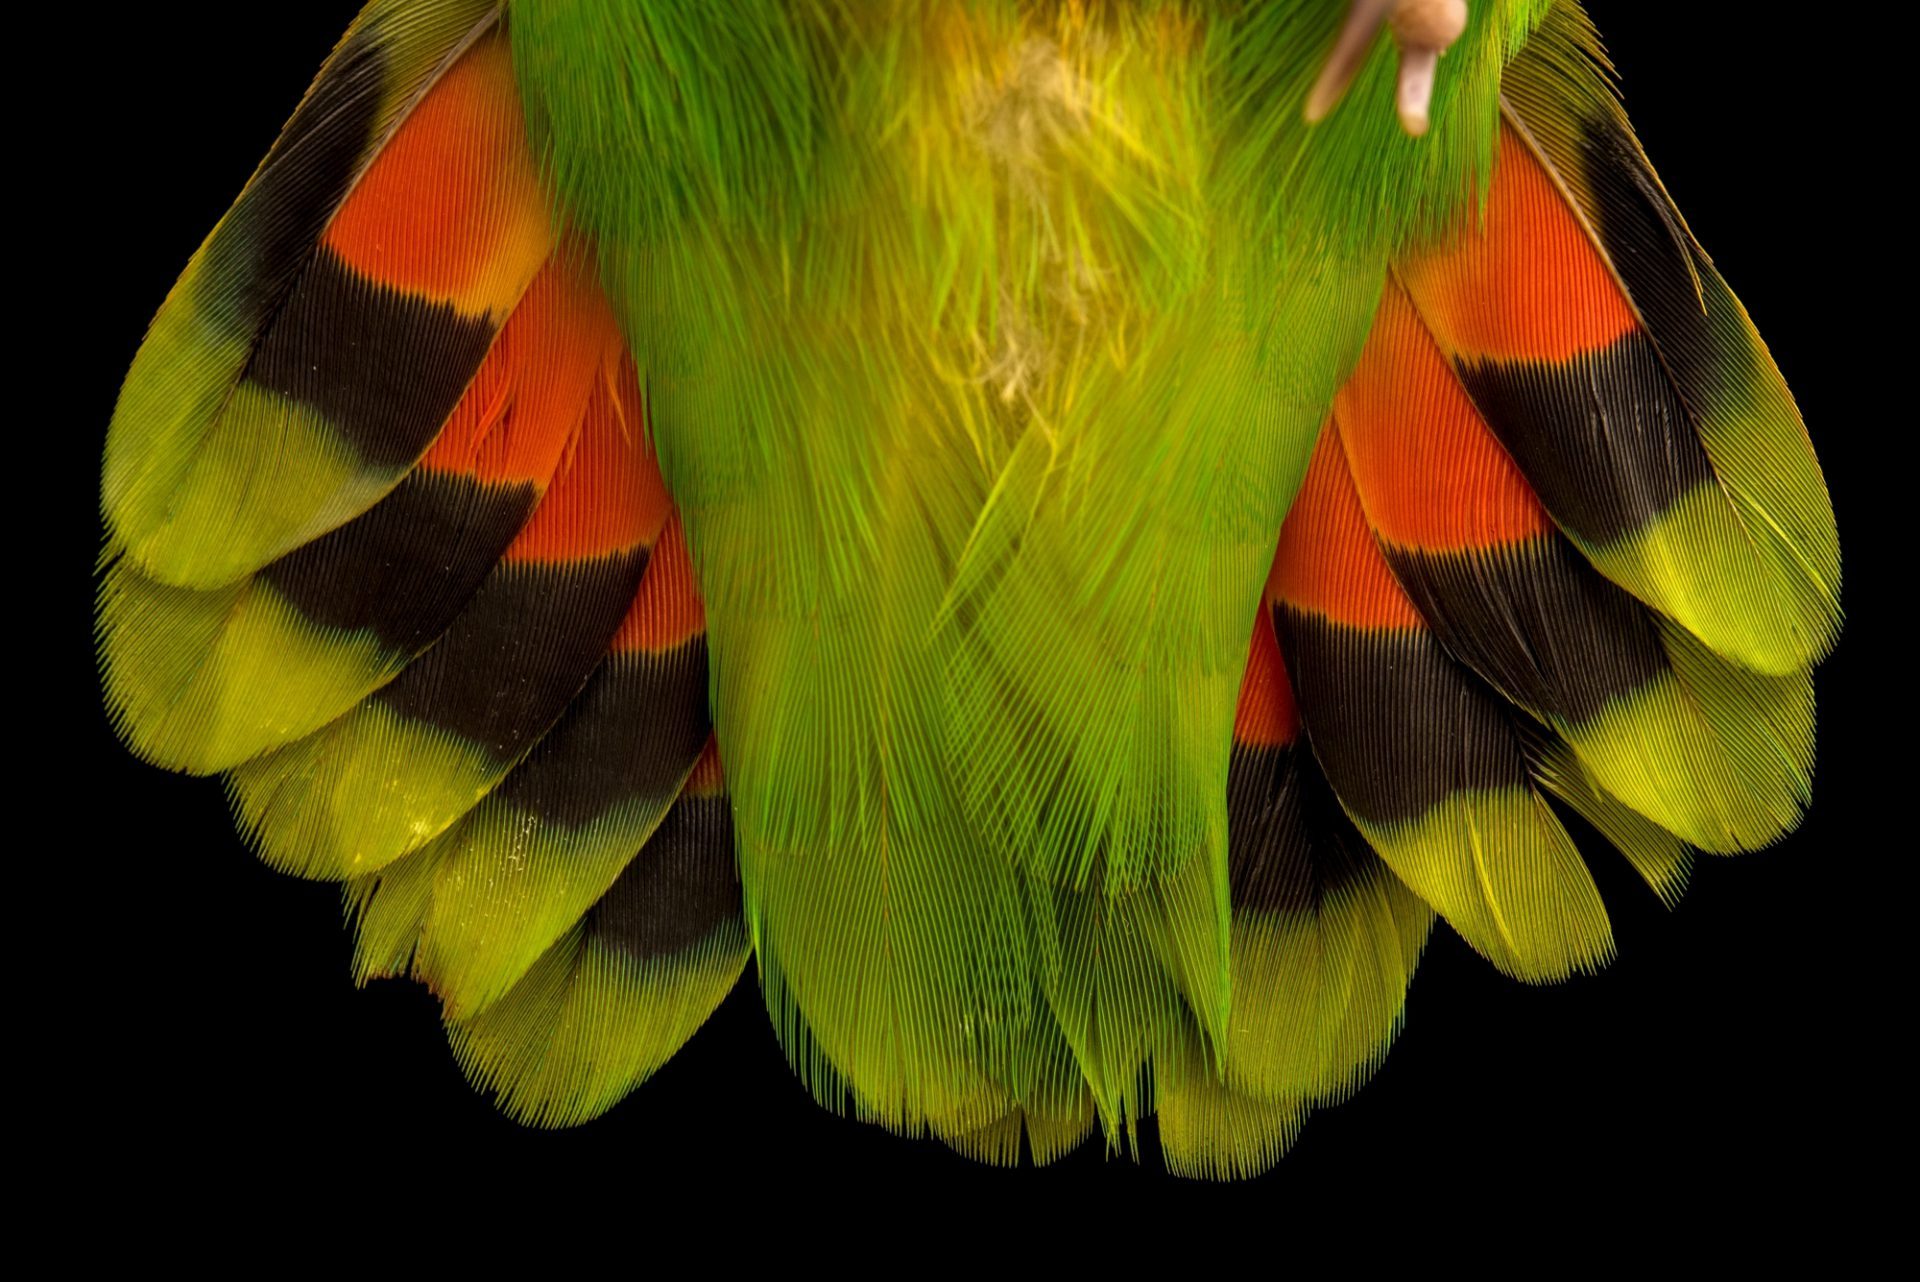 Photo: The tail feathers of a red headed lovebird, Agapornis pullarius, at Loro Parque Fundacion.